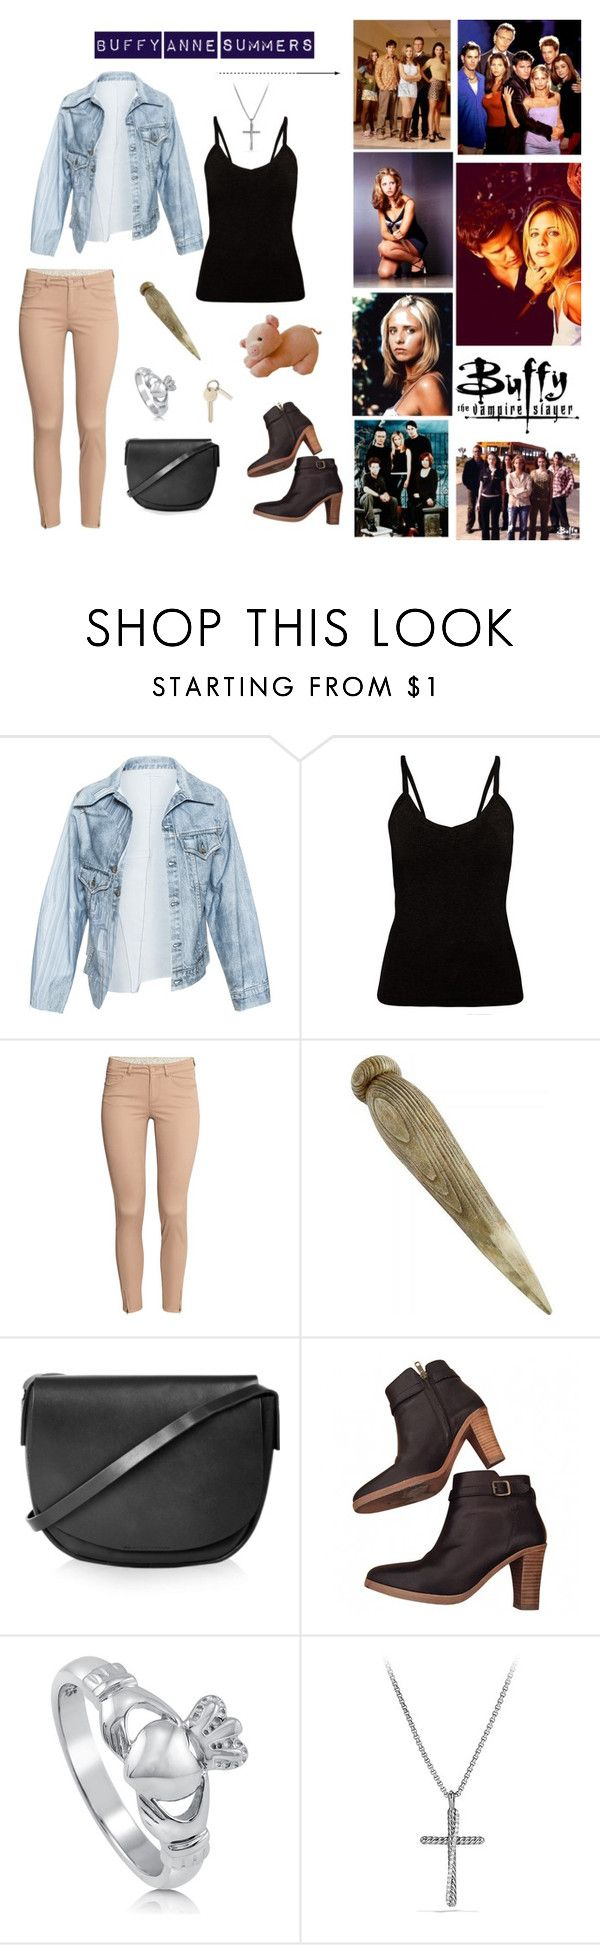 """Buffy Summers Look Simple / Sarah Michelle Gellar"" by miss-brendon ❤ liked on Polyvore featuring Faustine Steinmetz, H&M, Topshop, A.P.C., BERRICLE and David Yurman"